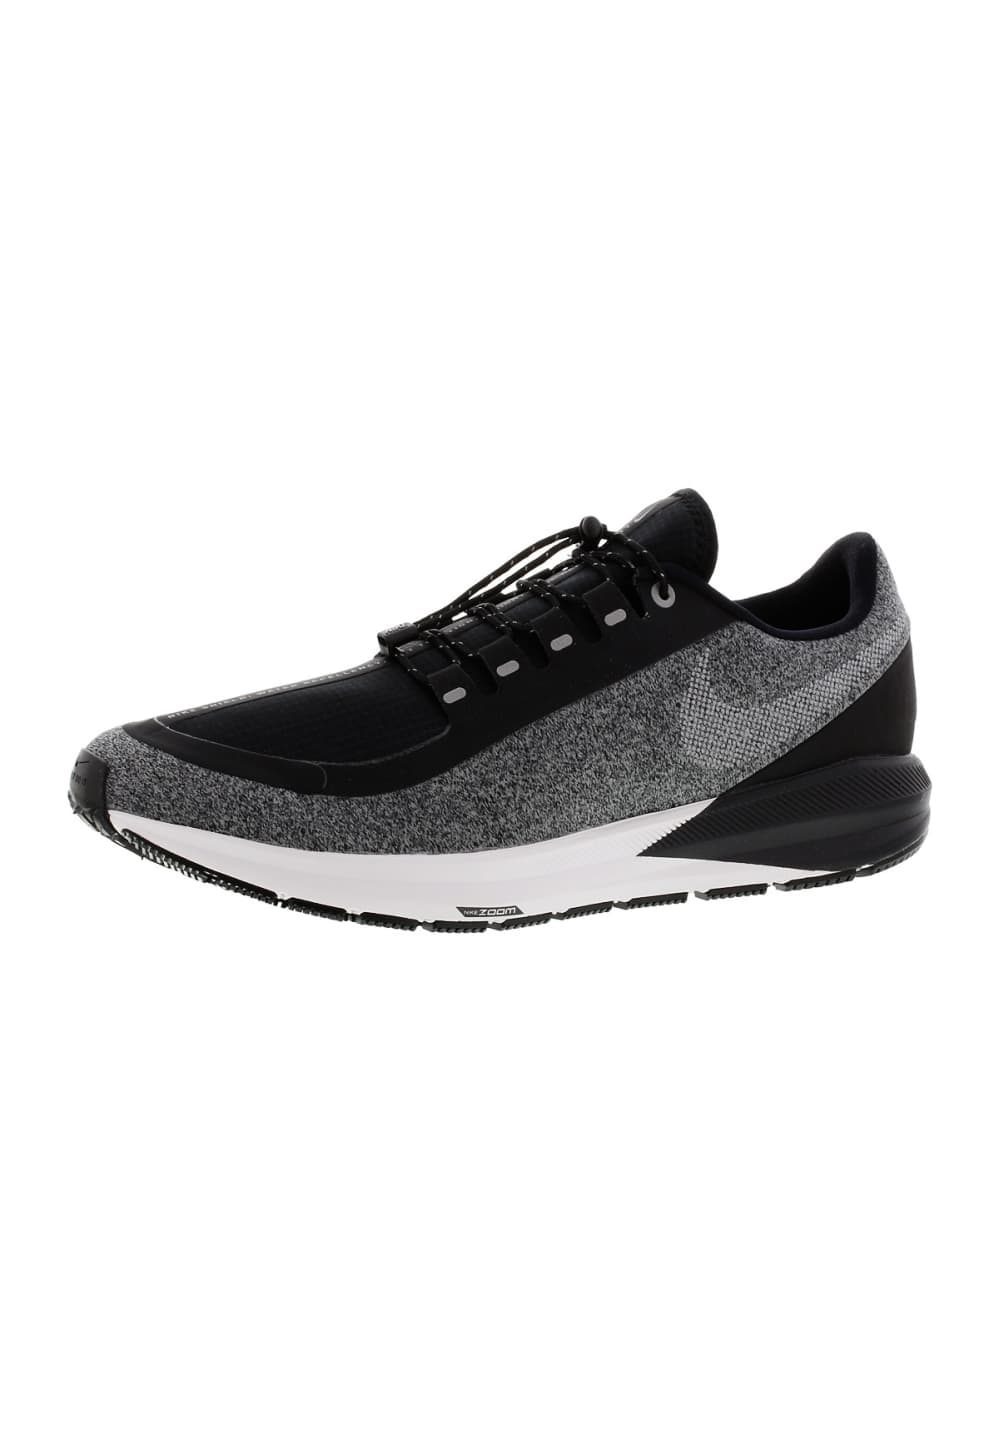 best website 8e5cc 55a6b Nike Air Zoom Structure 22 Shield - Running shoes for Men - Black